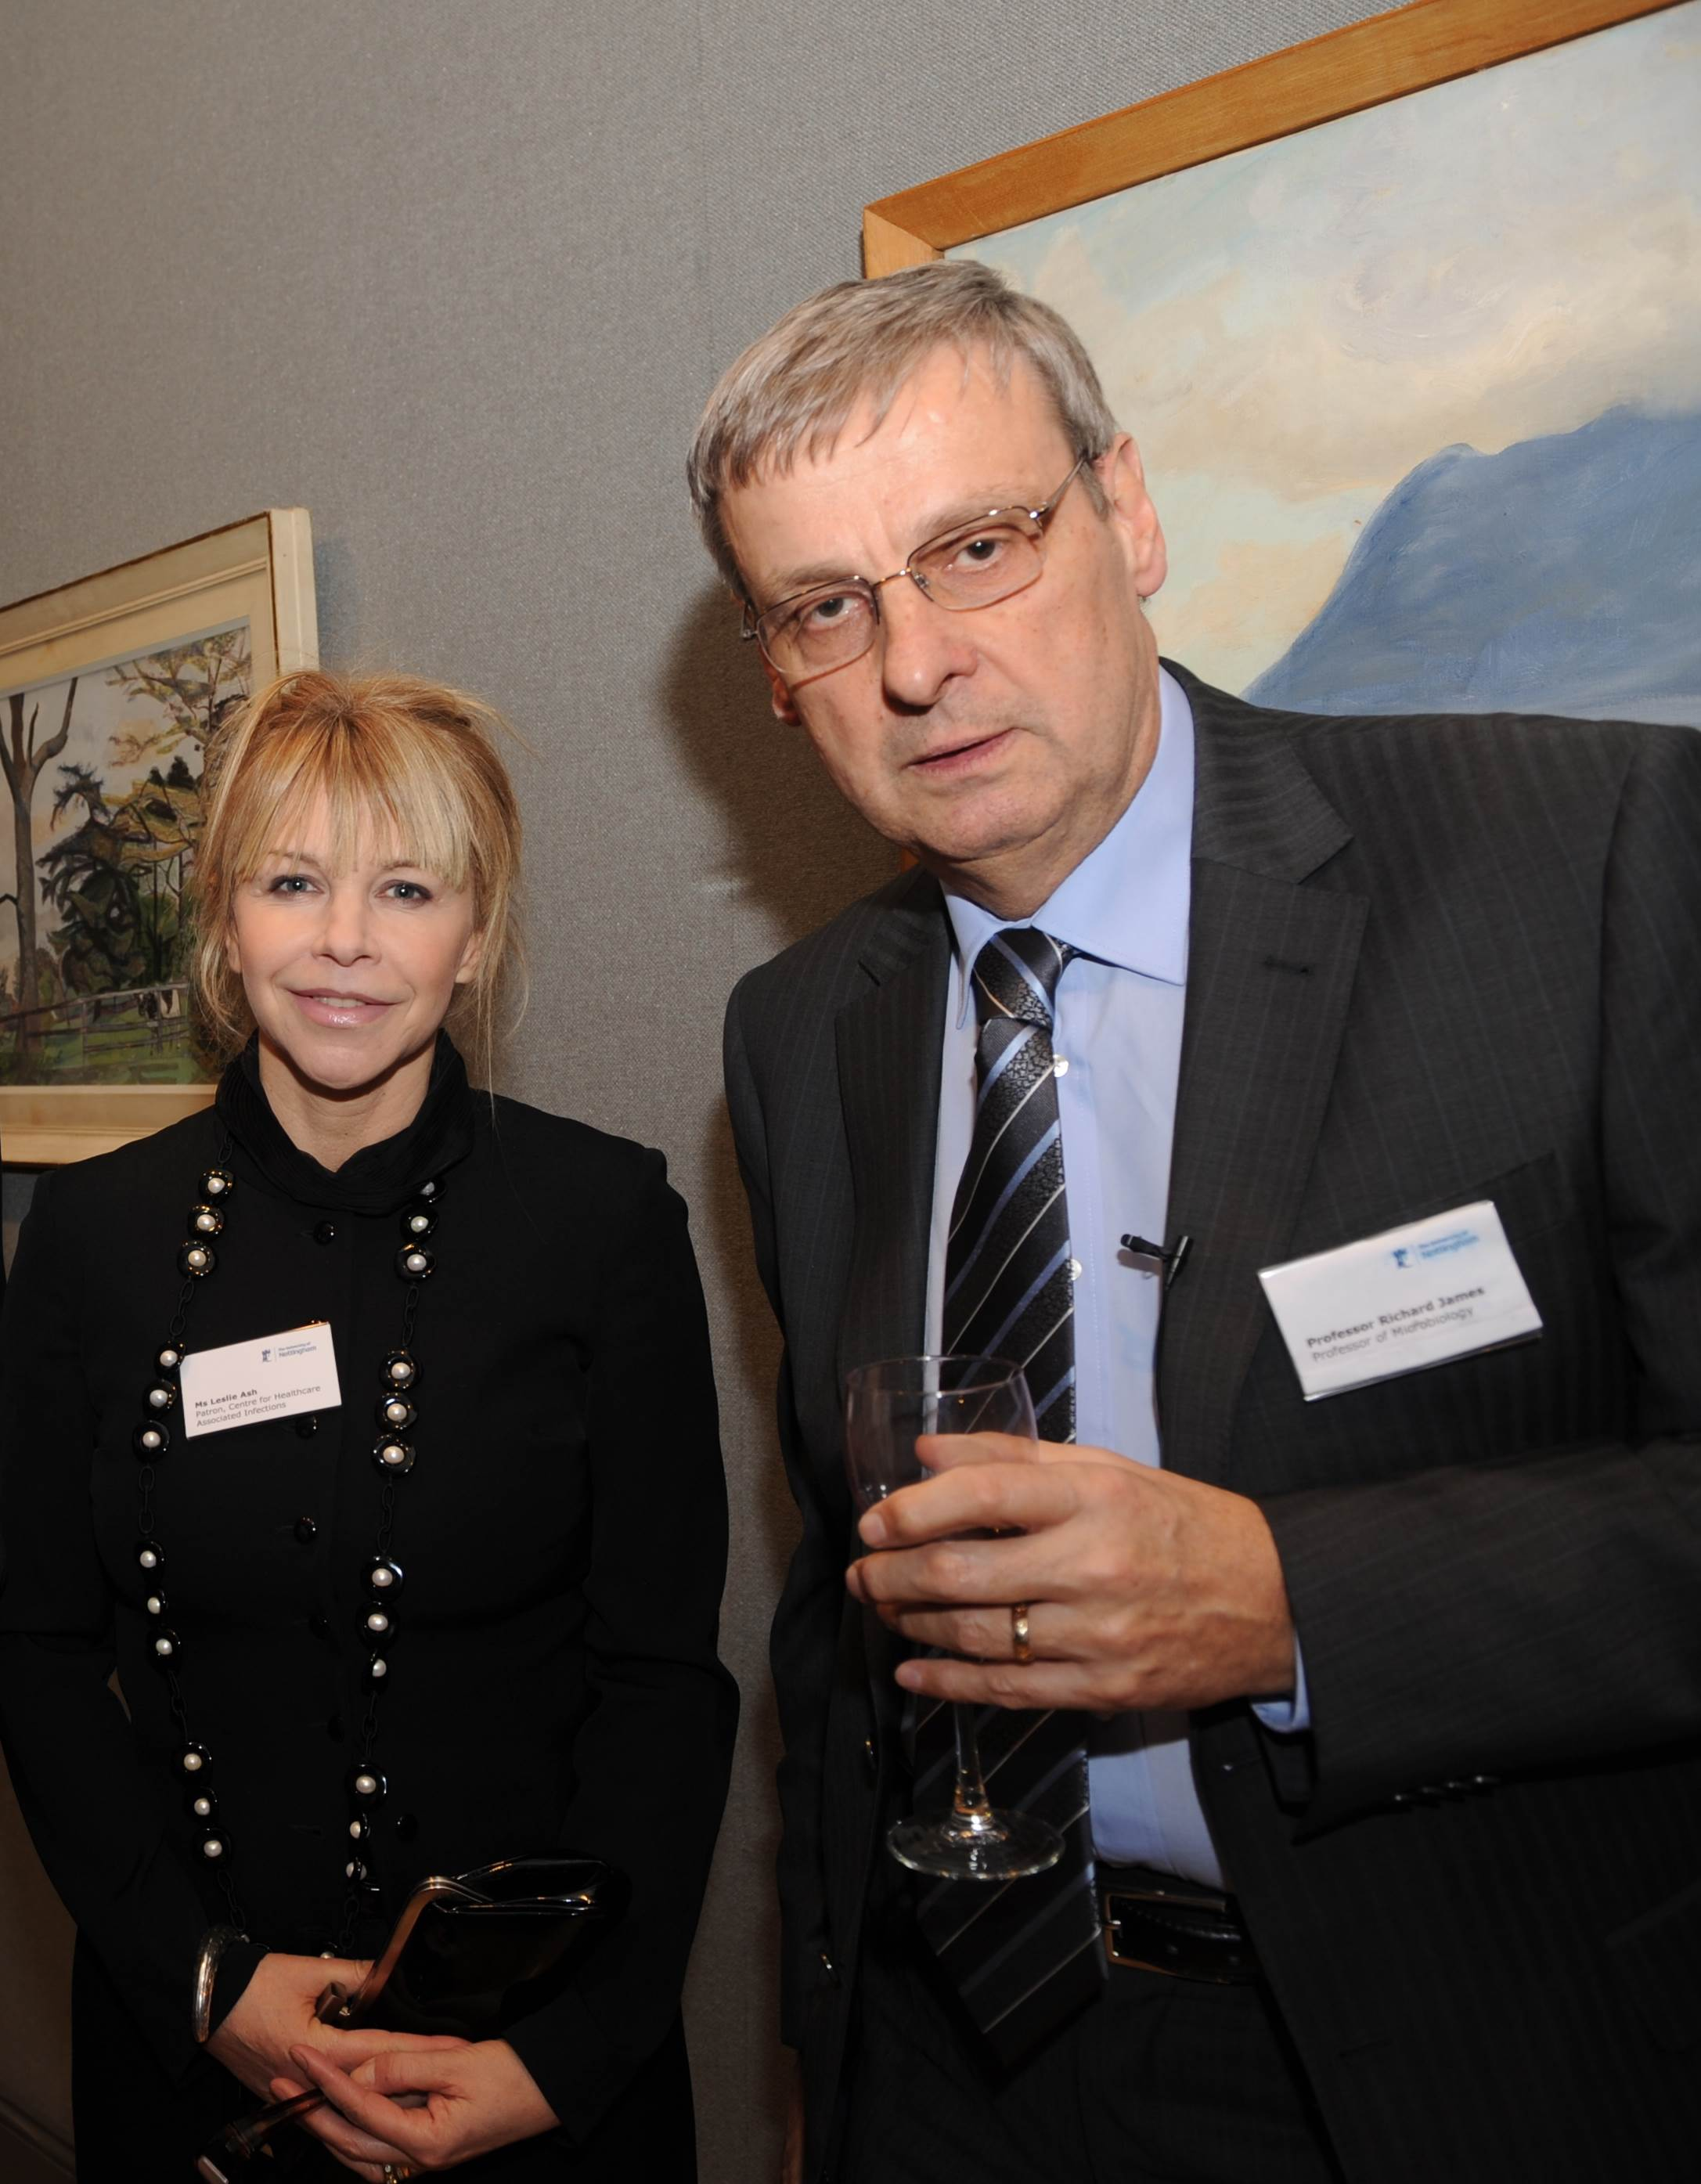 Leslie Ash, Patron of CHAI, with Professor James